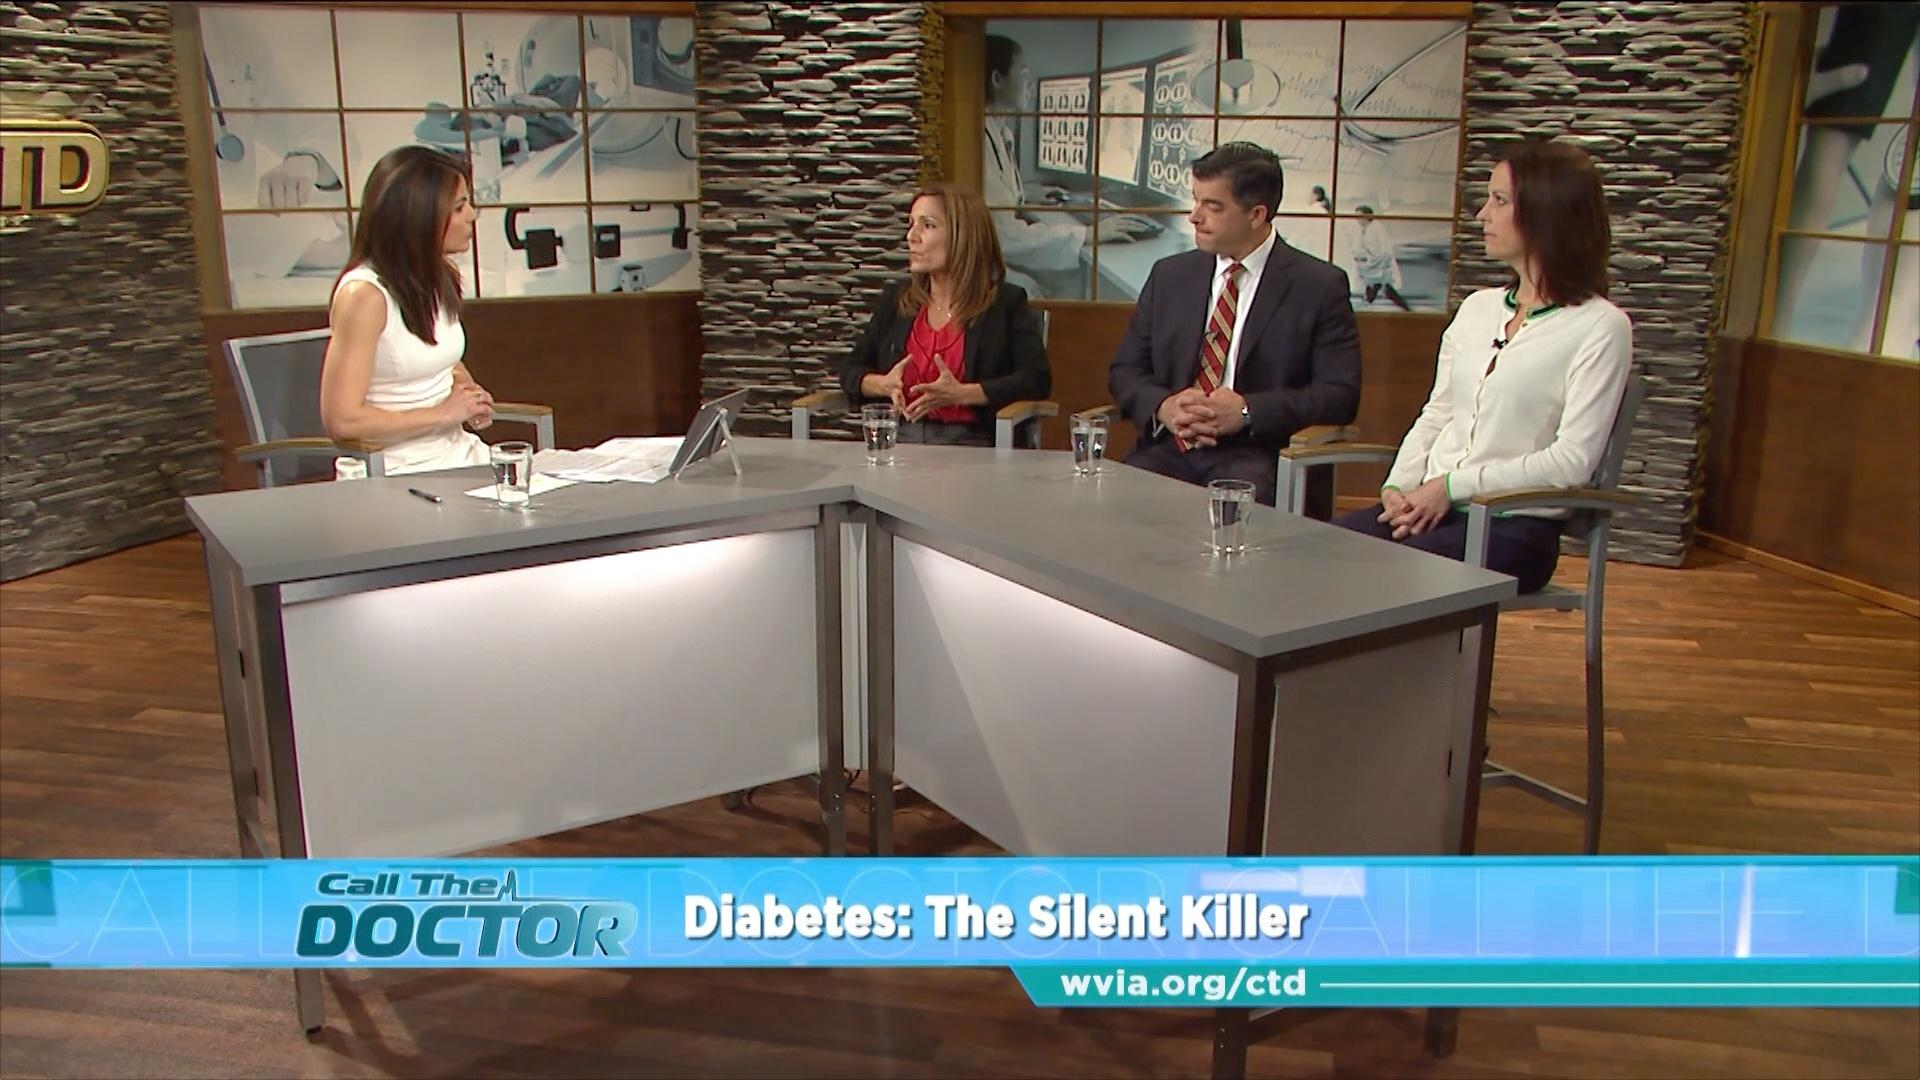 diabetes the silent killer The majority of people at risk for peripheral arterial disease (pad) - a silent killer affecting millions - do not even know it, according the national council on the aging (ncoa) diabetes is one of the biggest risk factors in getting the disease, says the organization, yet results of a recent.